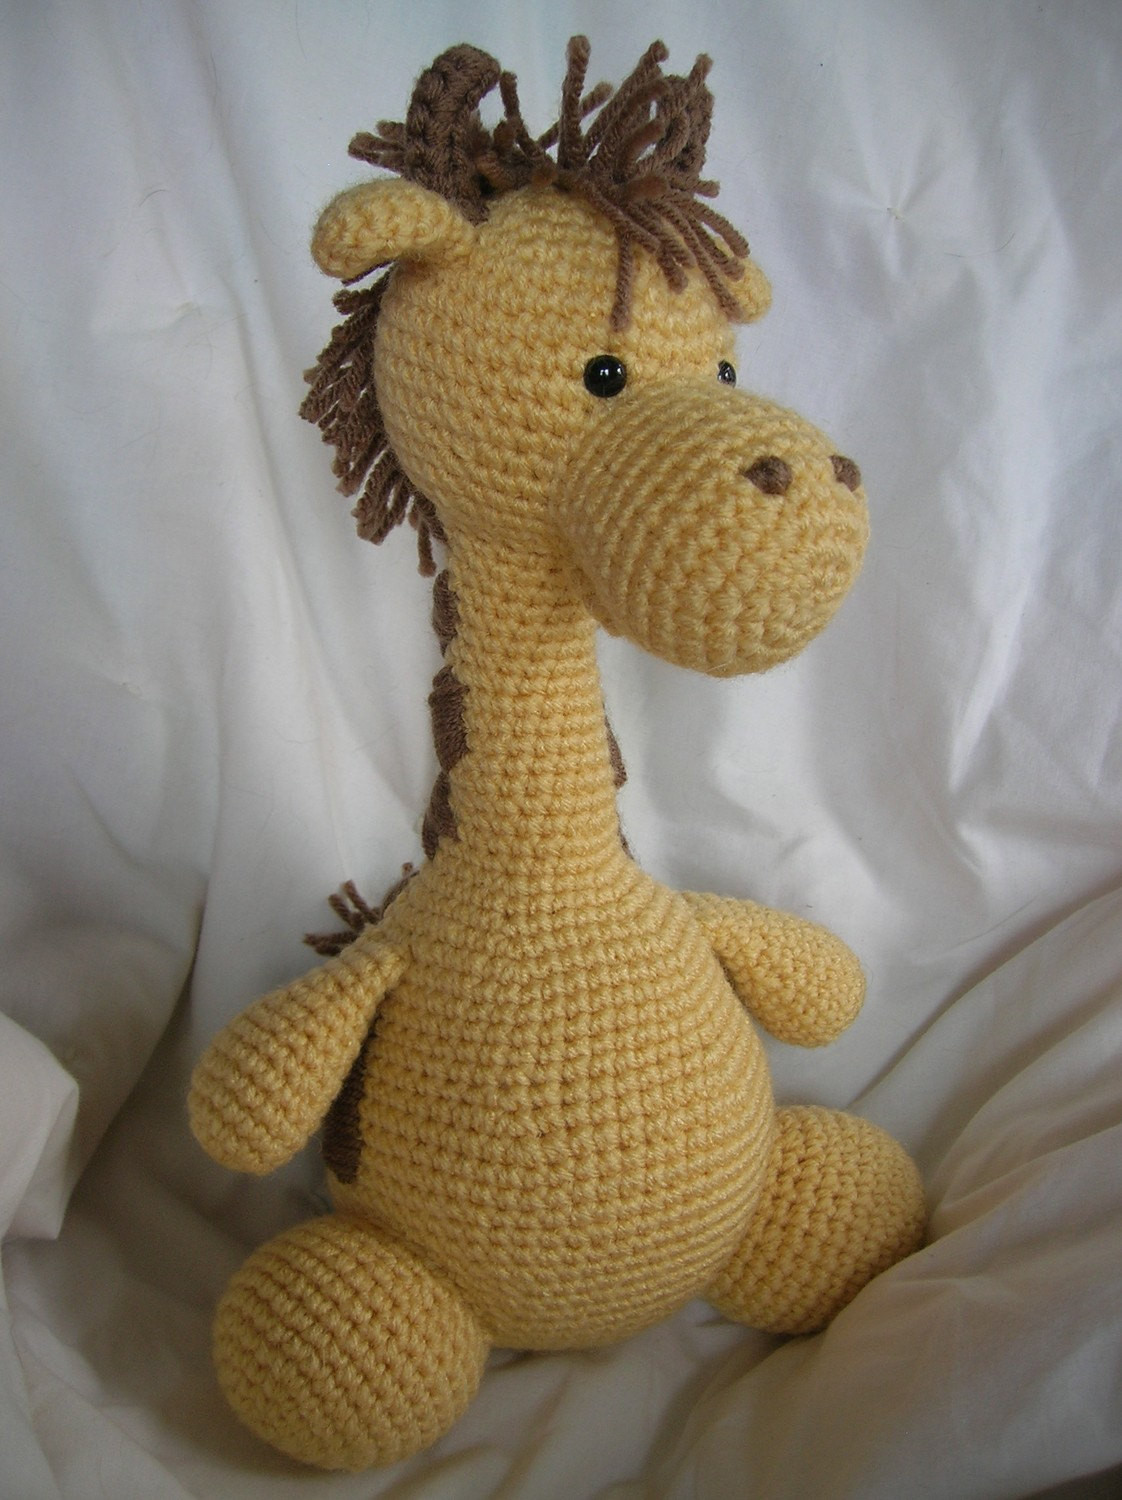 Crochet Giraffe Pattern New Girard the Giraffe Amigurumi Crochet Pattern Only Pdf Of Marvelous 41 Ideas Crochet Giraffe Pattern